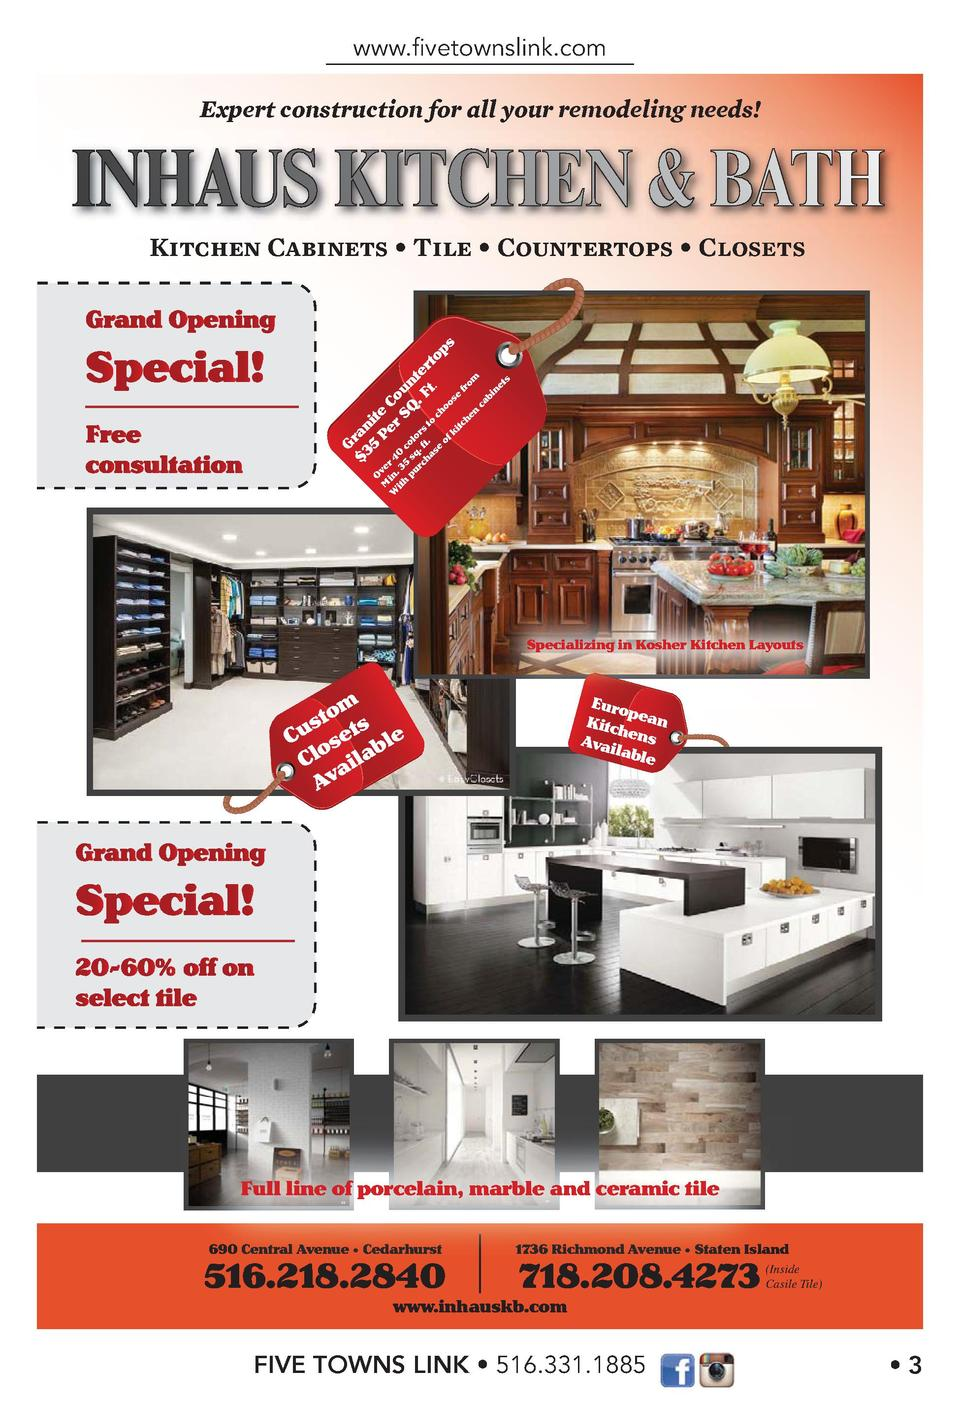 www.   vetownslink.com Expert construction for all your remodeling needs   Kitchen Cabinets Tile Countertops  itc he n  fr...